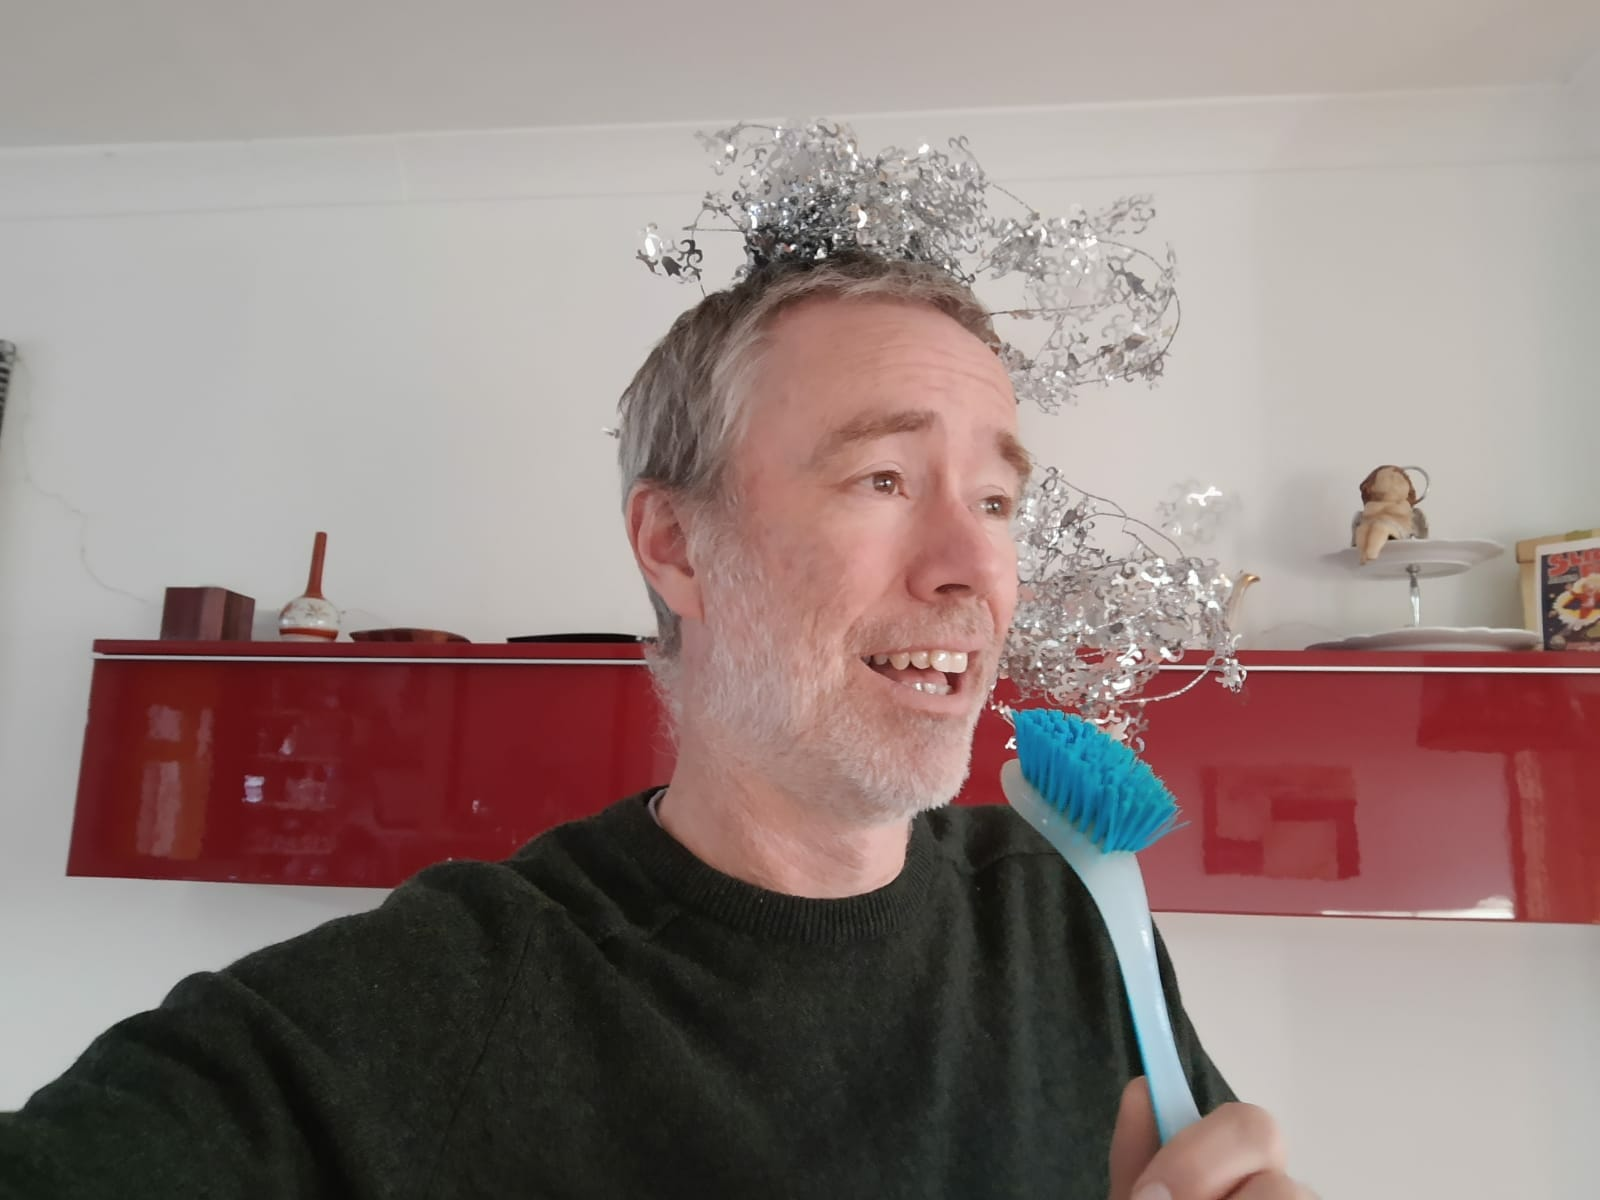 Delegate pretending to sing during one of Orangeworks Christmas team building activities, Christmas Lip Sync Sing A Long.